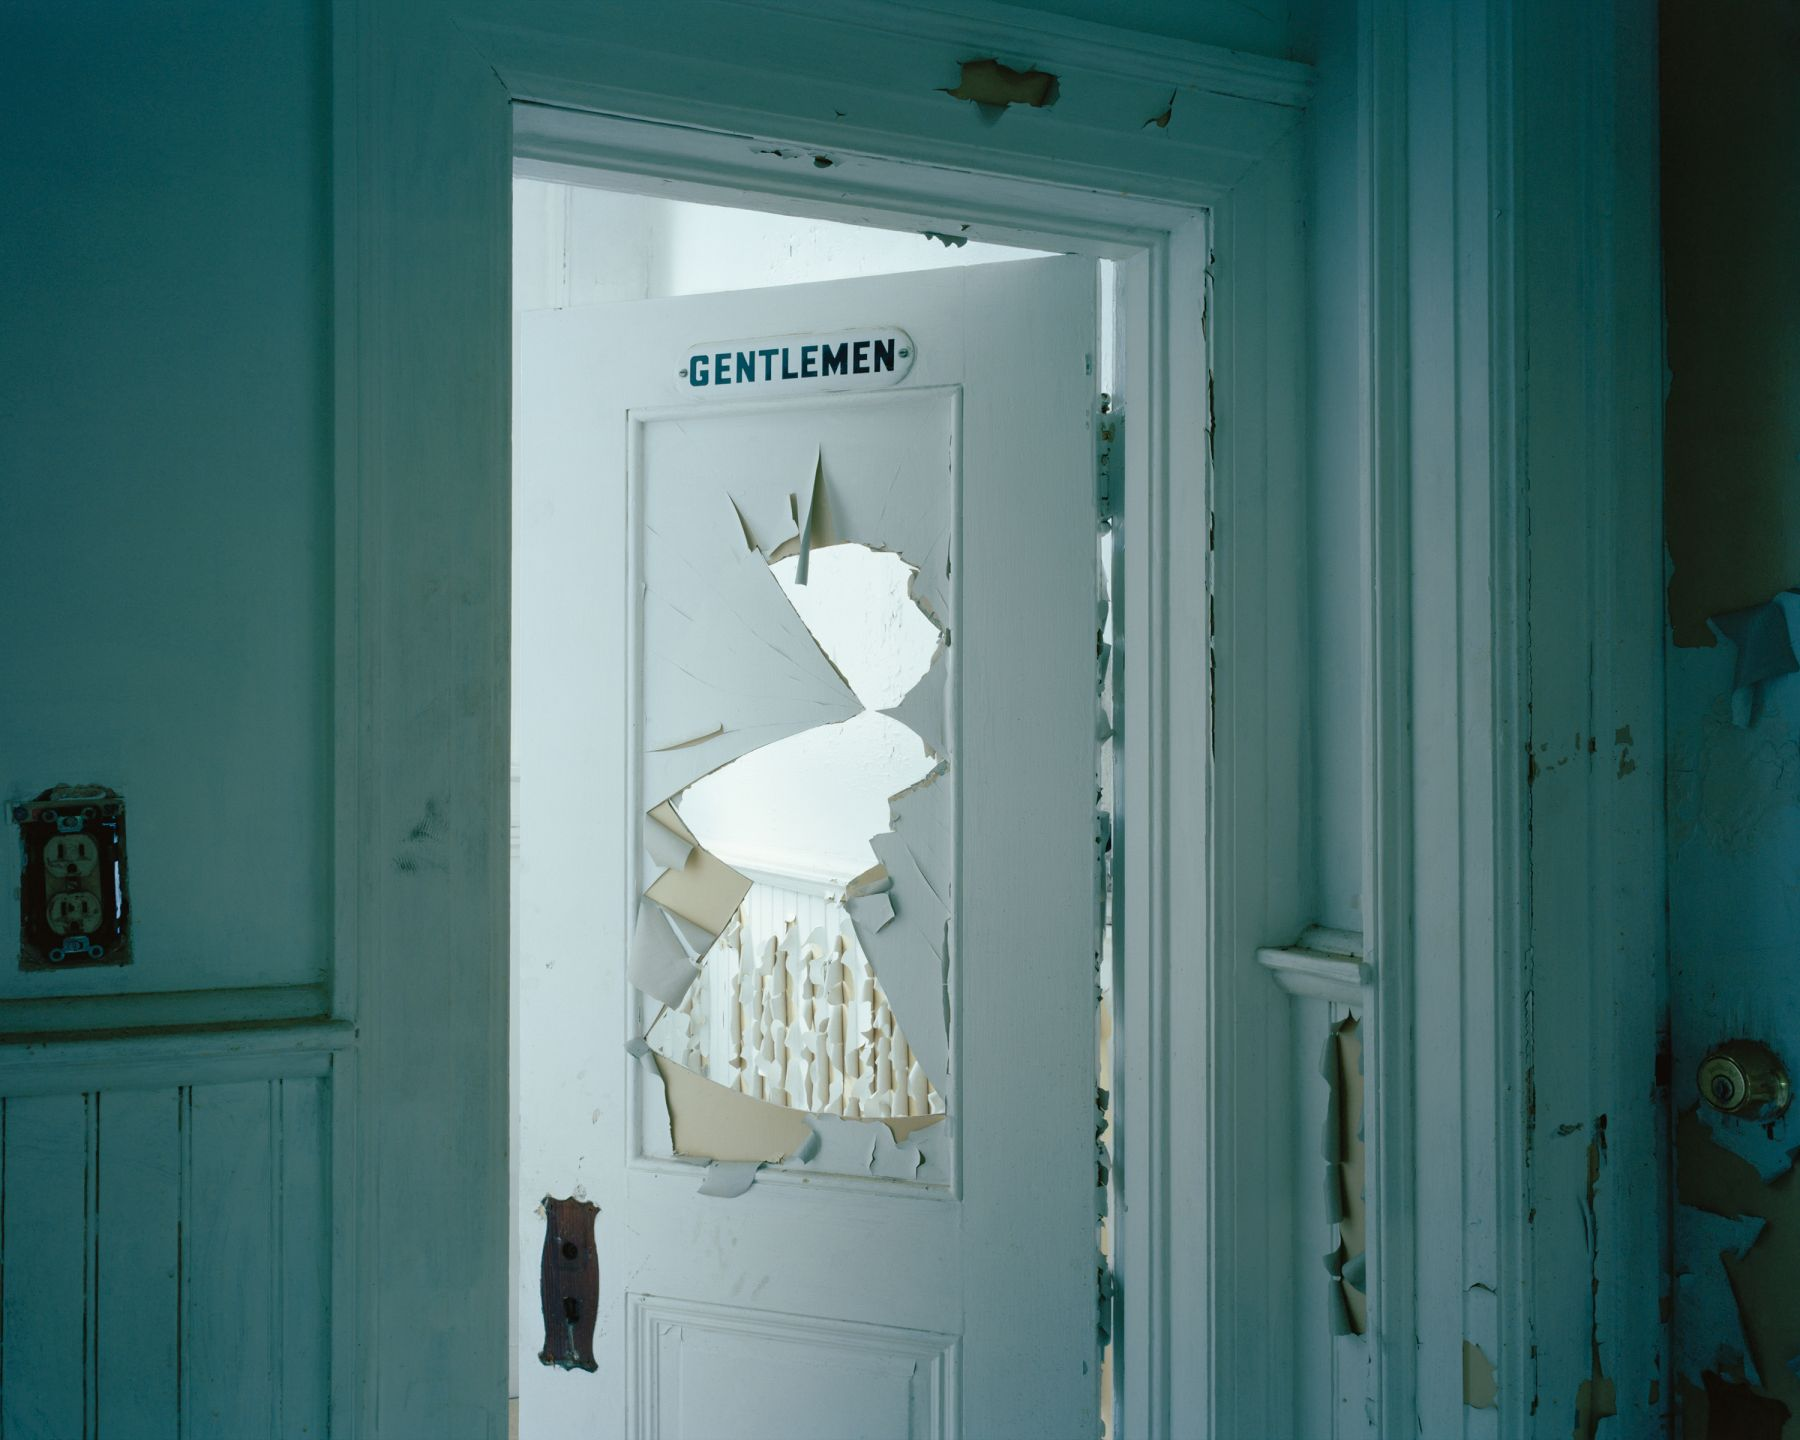 McNair Evans, Dad's Office '03, 2010, Archival pigment print. Photography.